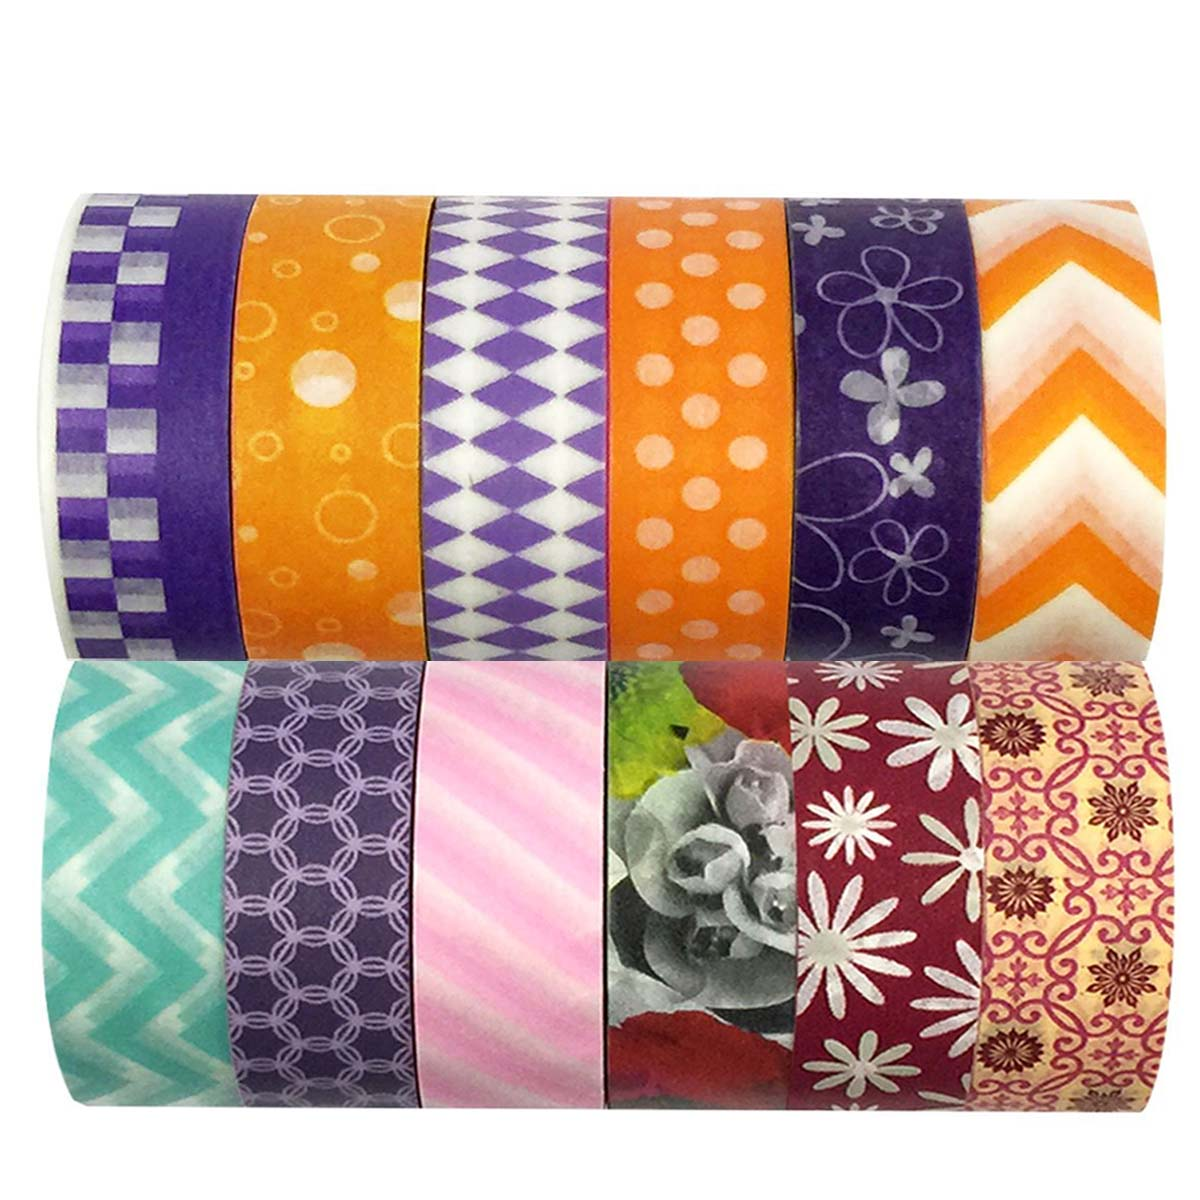 Wrapables® Washi Tapes Decorative Masking Tapes, Set of 12, ADSET32